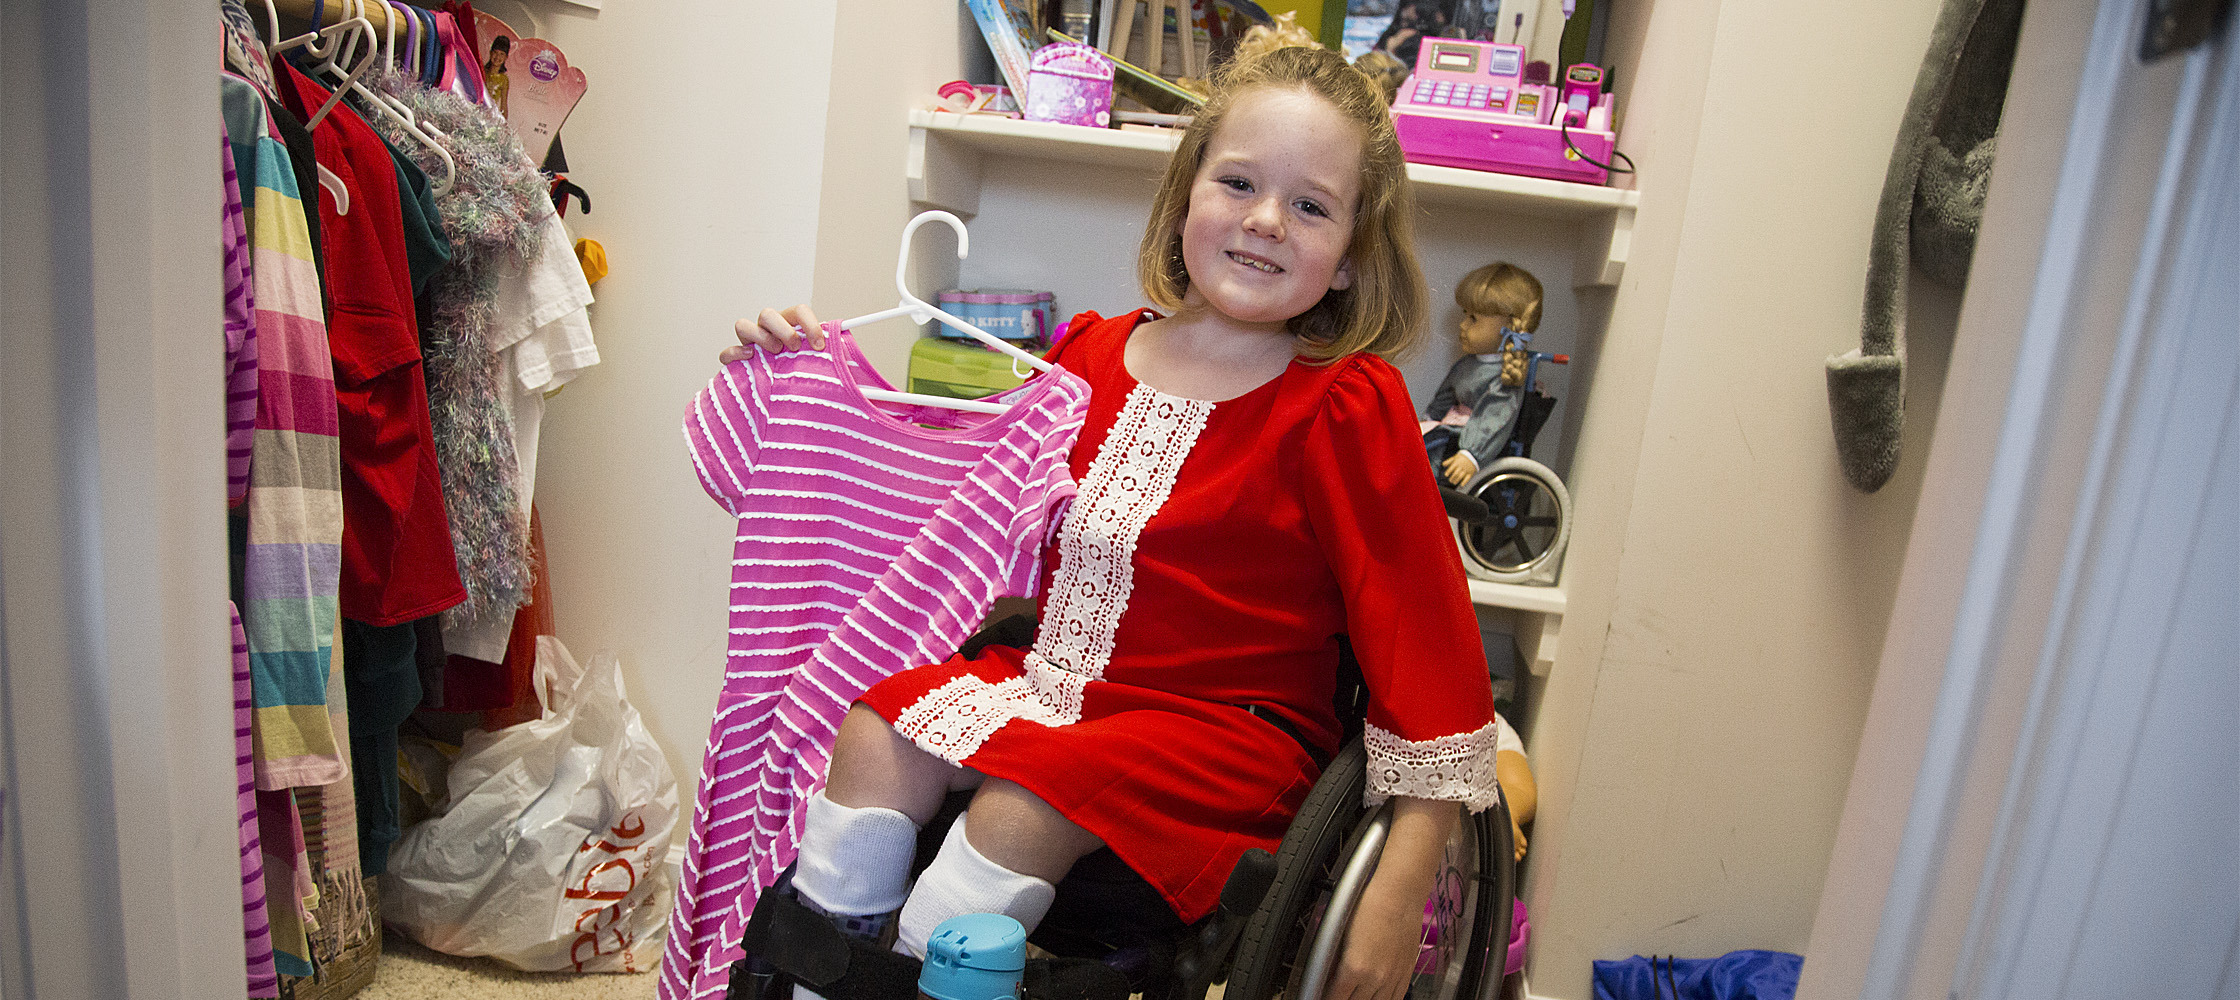 Aubrey Parks is able to wear dresses thanks to the newly FDA-approved MAGEC rod implanted in her back.